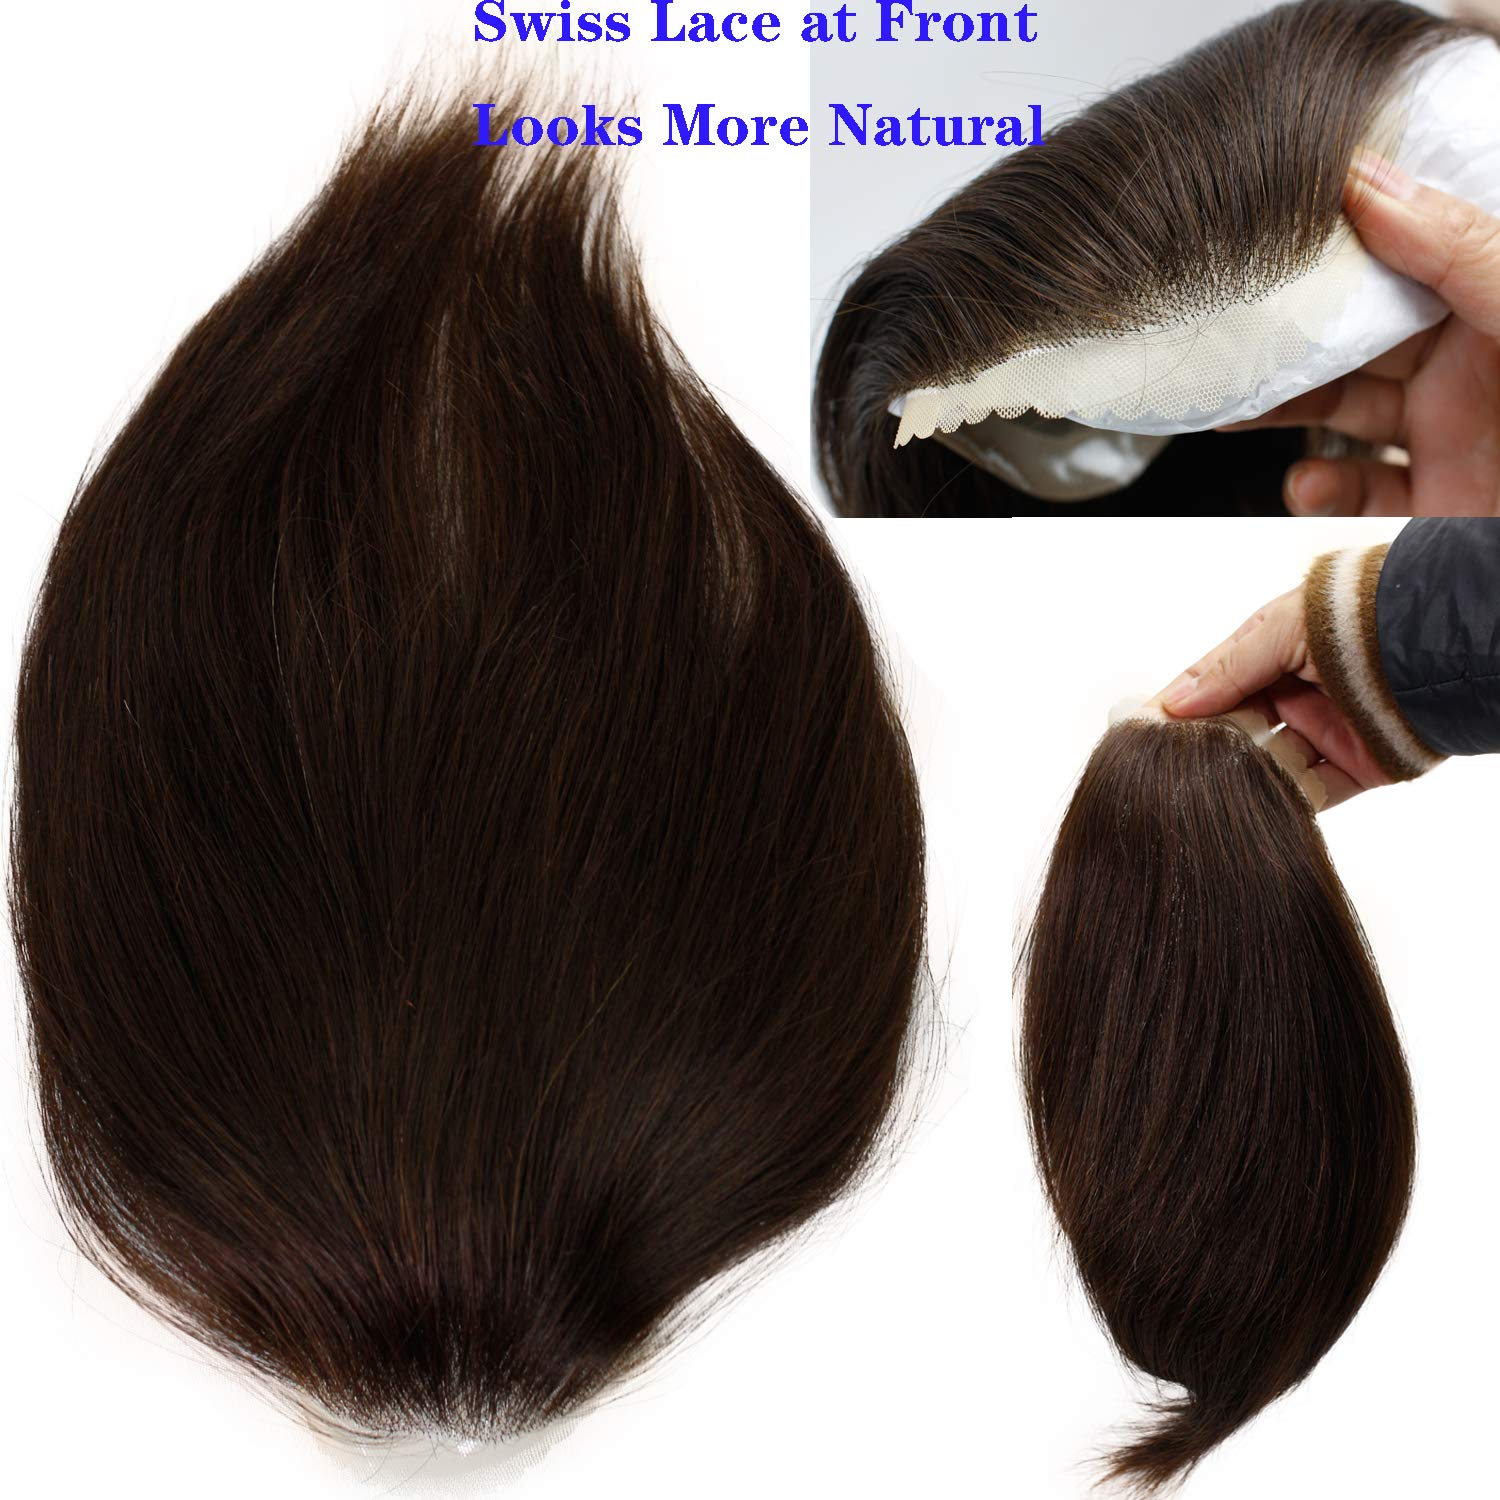 """Men's Toupee Hairpieces European Virgin Human Hair Replacement System Pieces for Men Swiss Lace Net with PU Base Size 4.33x6.7"""""""